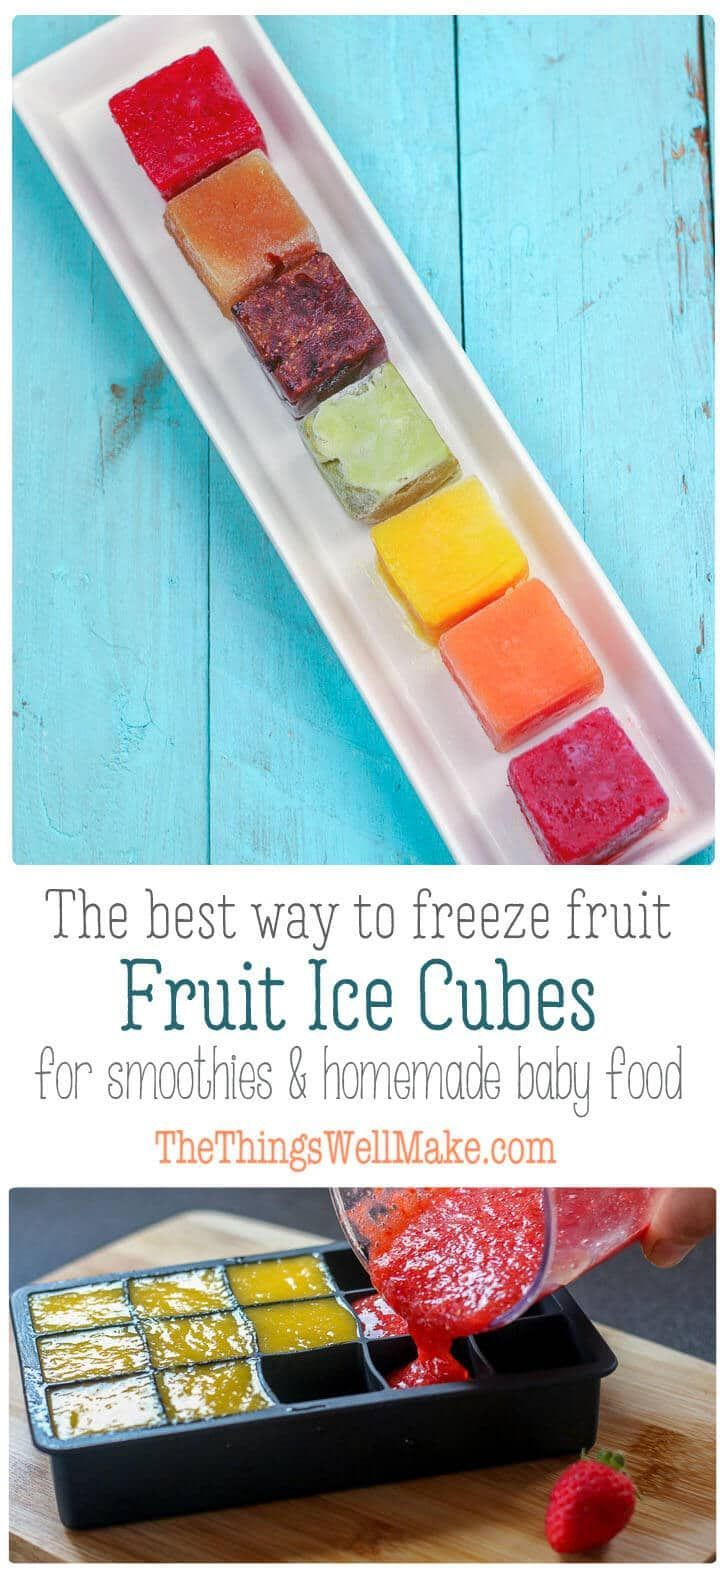 Fruit Ice Cubes Freezing Fruit For Smoothies Or Baby Food Recipe Baby Food Recipes Fruit Ice Cubes Healthy Fruit Smoothies